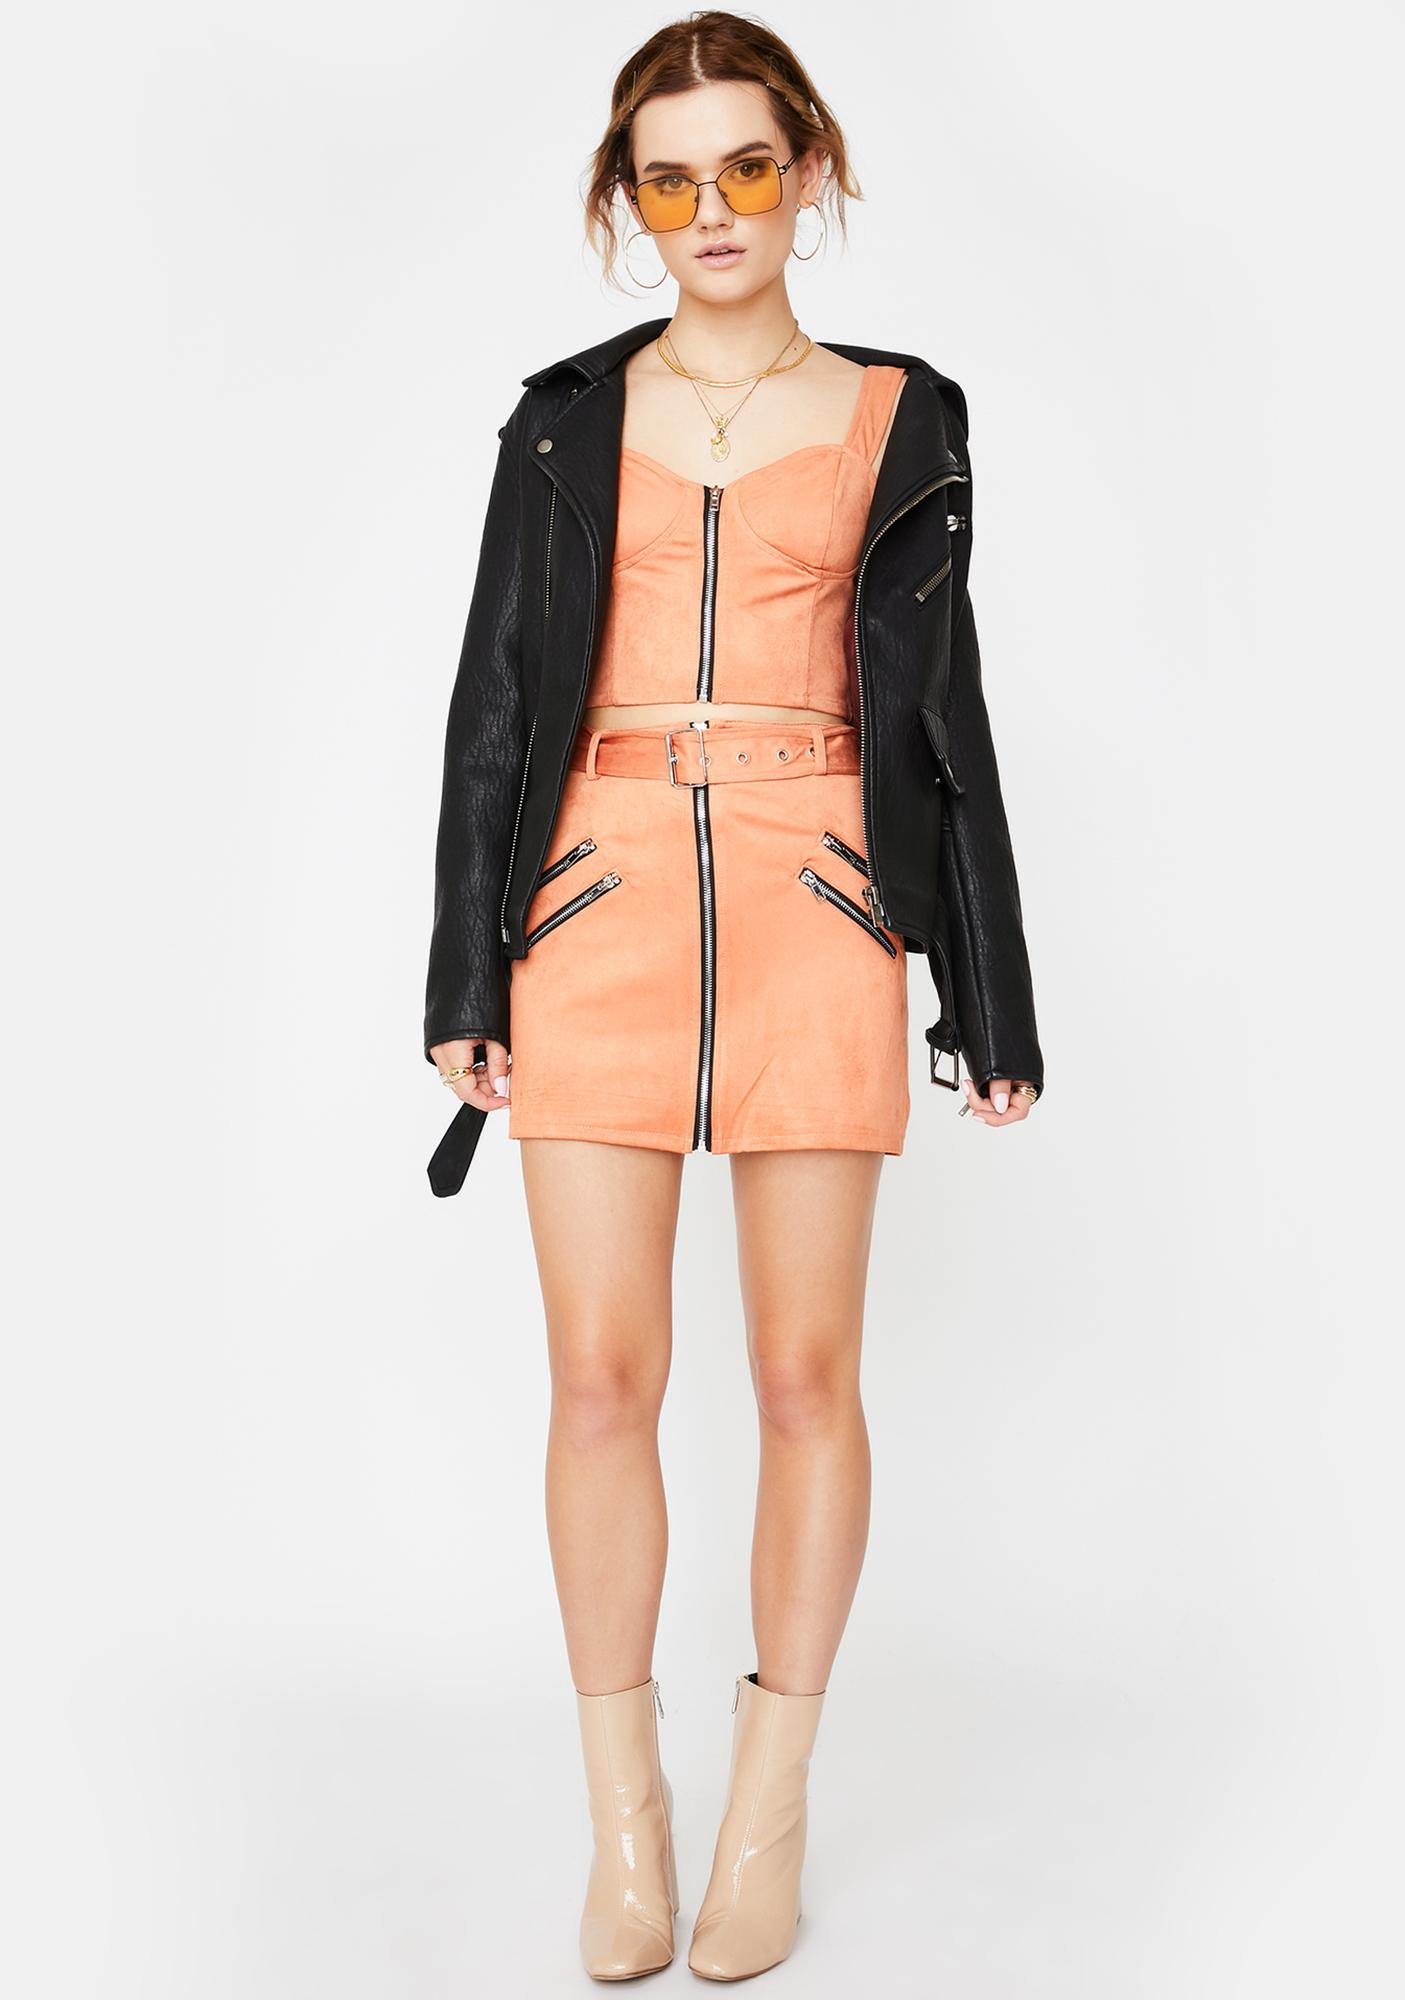 Honey Punch Salmon Zip Up Bustier